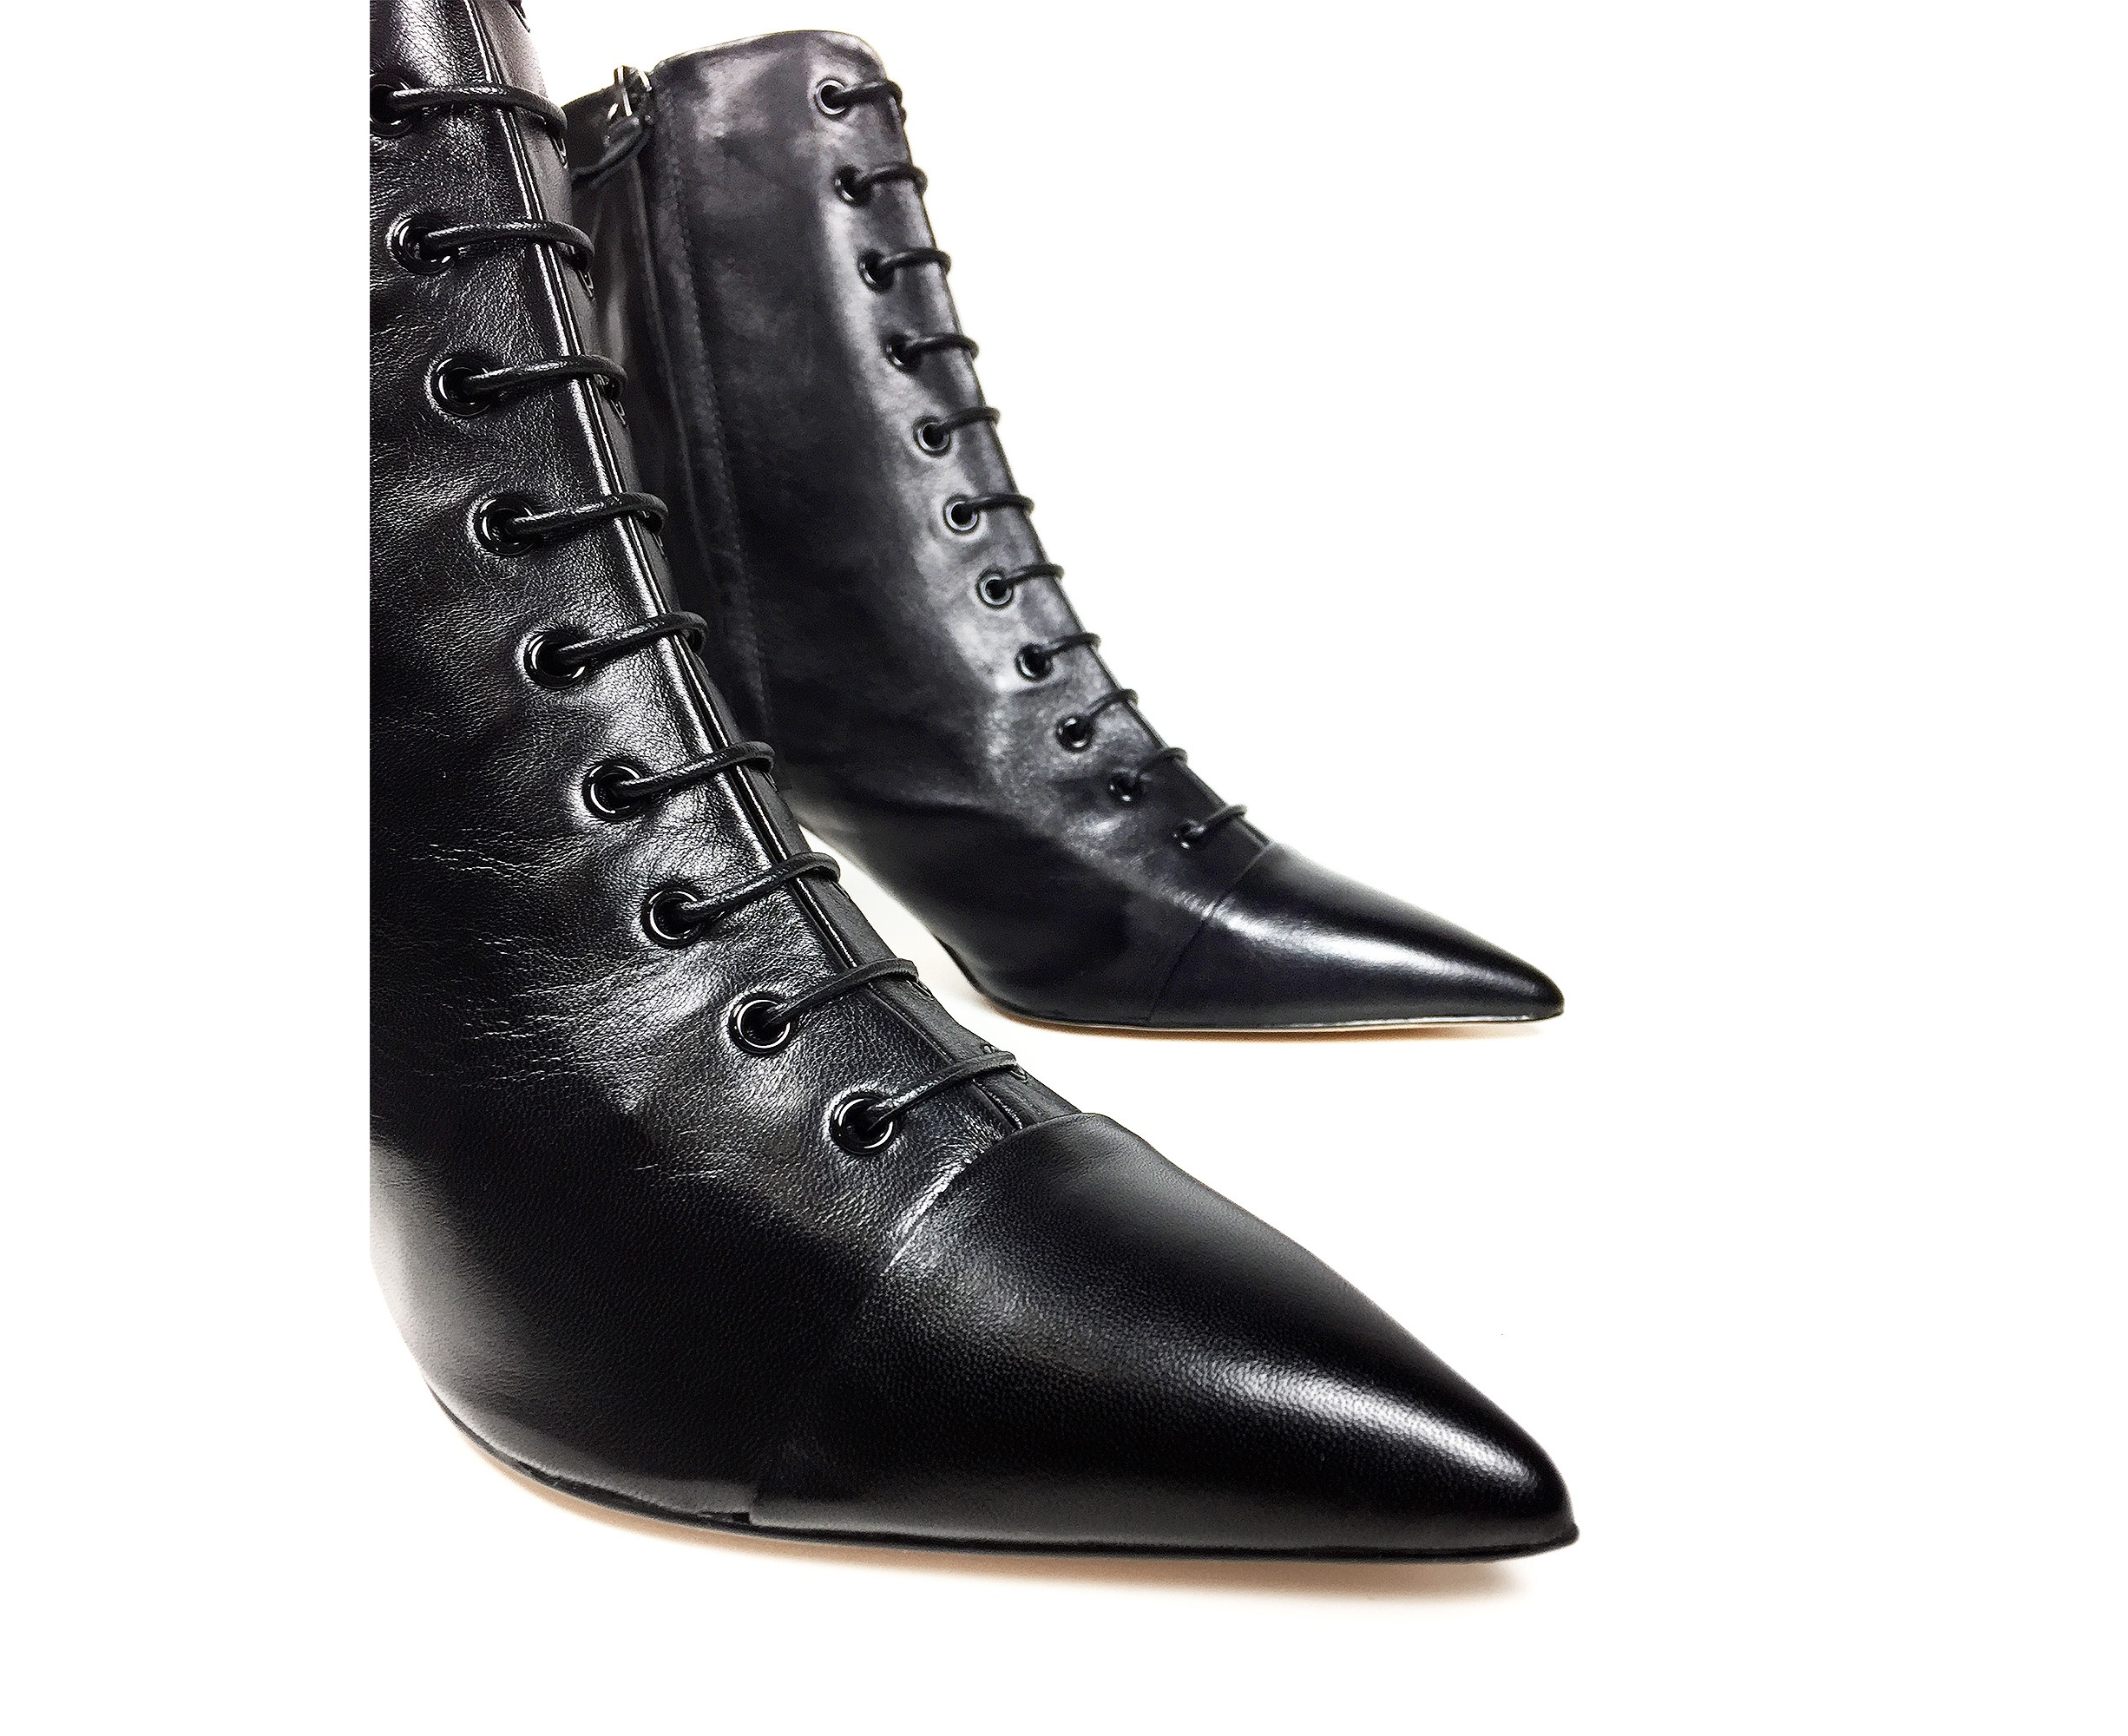 970f9a8cfe5 Zara Women Lace-up leather high heel ankle boots 5144 301